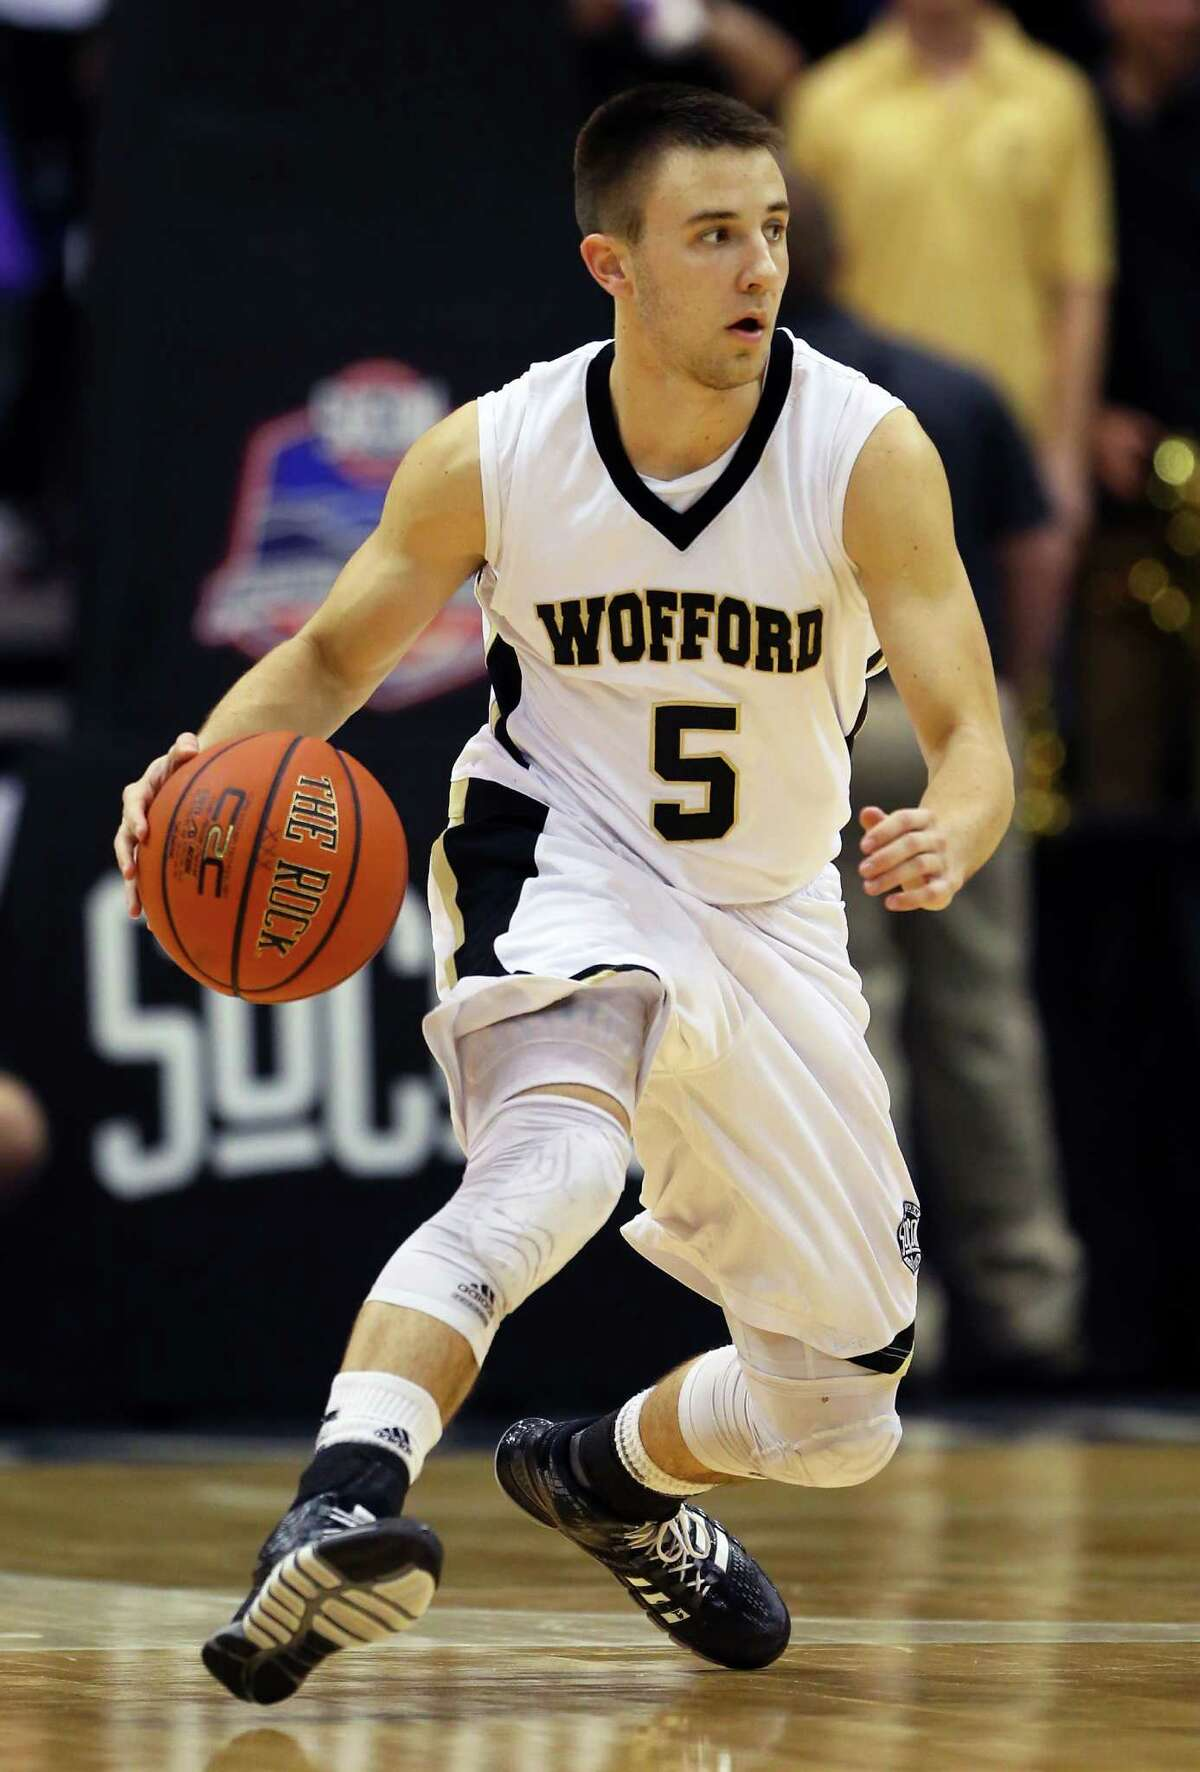 24. WOFFORD (112 points) Record: 24-4